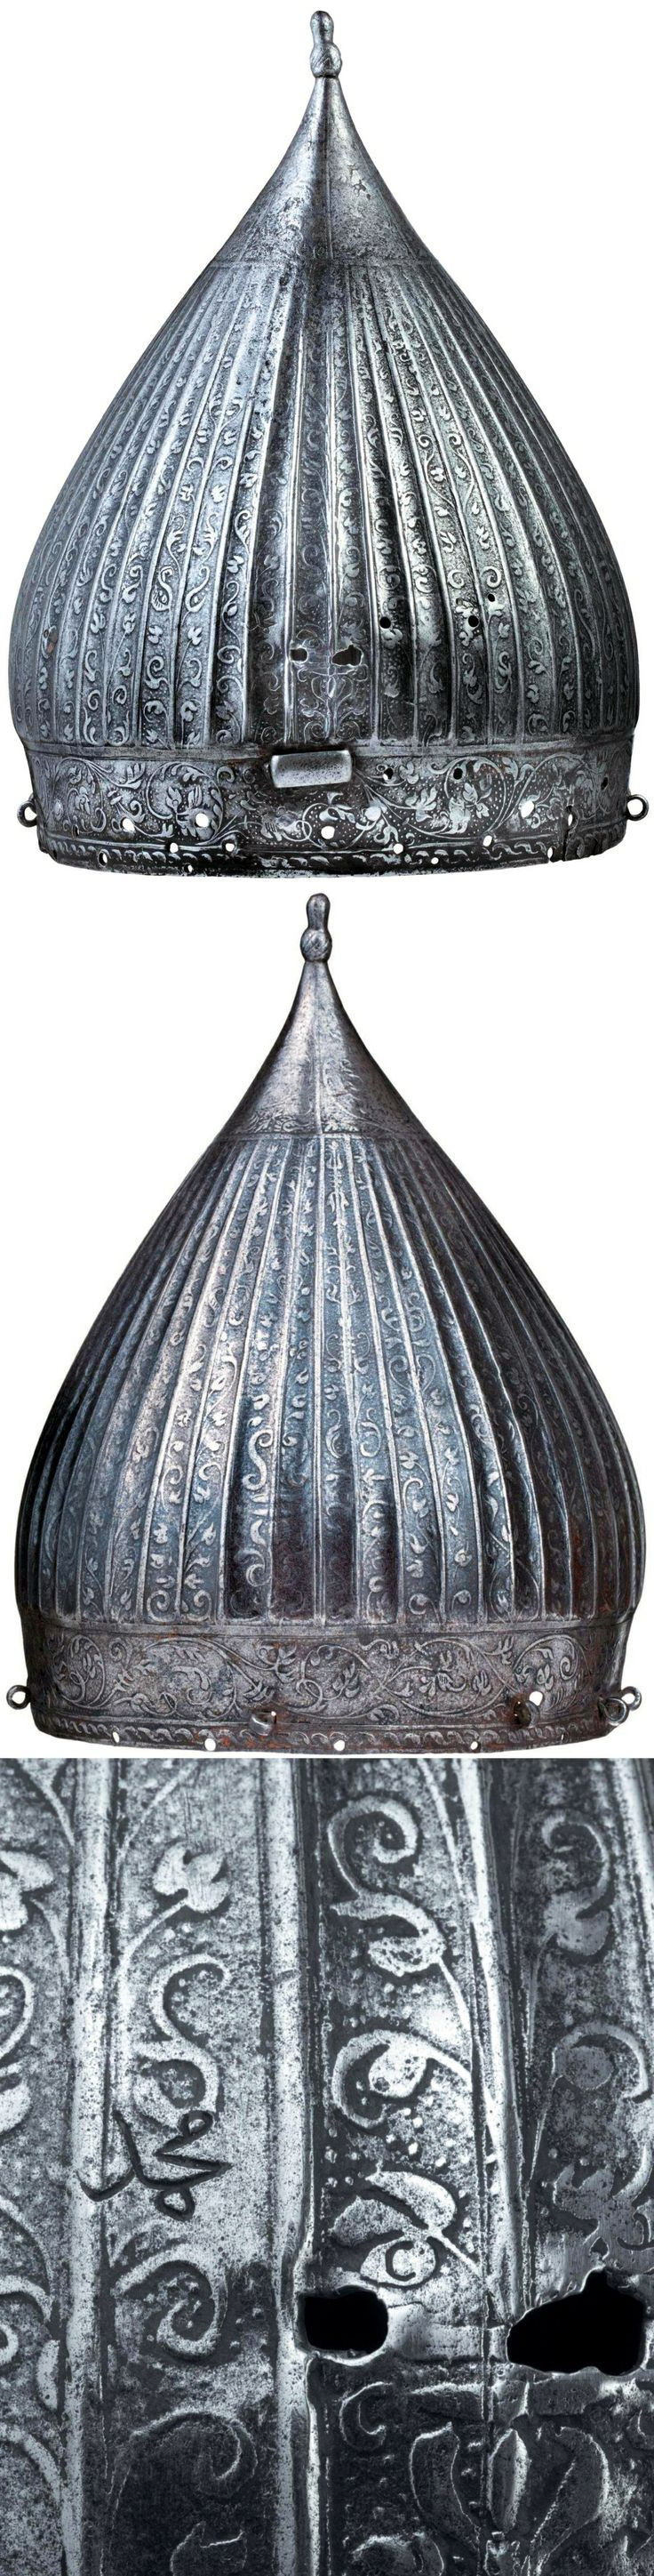 """European (Nuremberg) produced Zischägge helmet, forged in one piece, made in the Indo-Persian style, bearing the Ottoman inscription """"Mohammed"""", the helmet was captured by the Ottomans during the Austro-Turkish war (1591-1606), circa 1560-80. This helmet is evidence of the European interest for the Ottoman style which emerged in Europe during the last quarter of the 16th century while at war against the Ottoman Empire, helmets produced in Nuremberg were intended for export to Poland and…"""